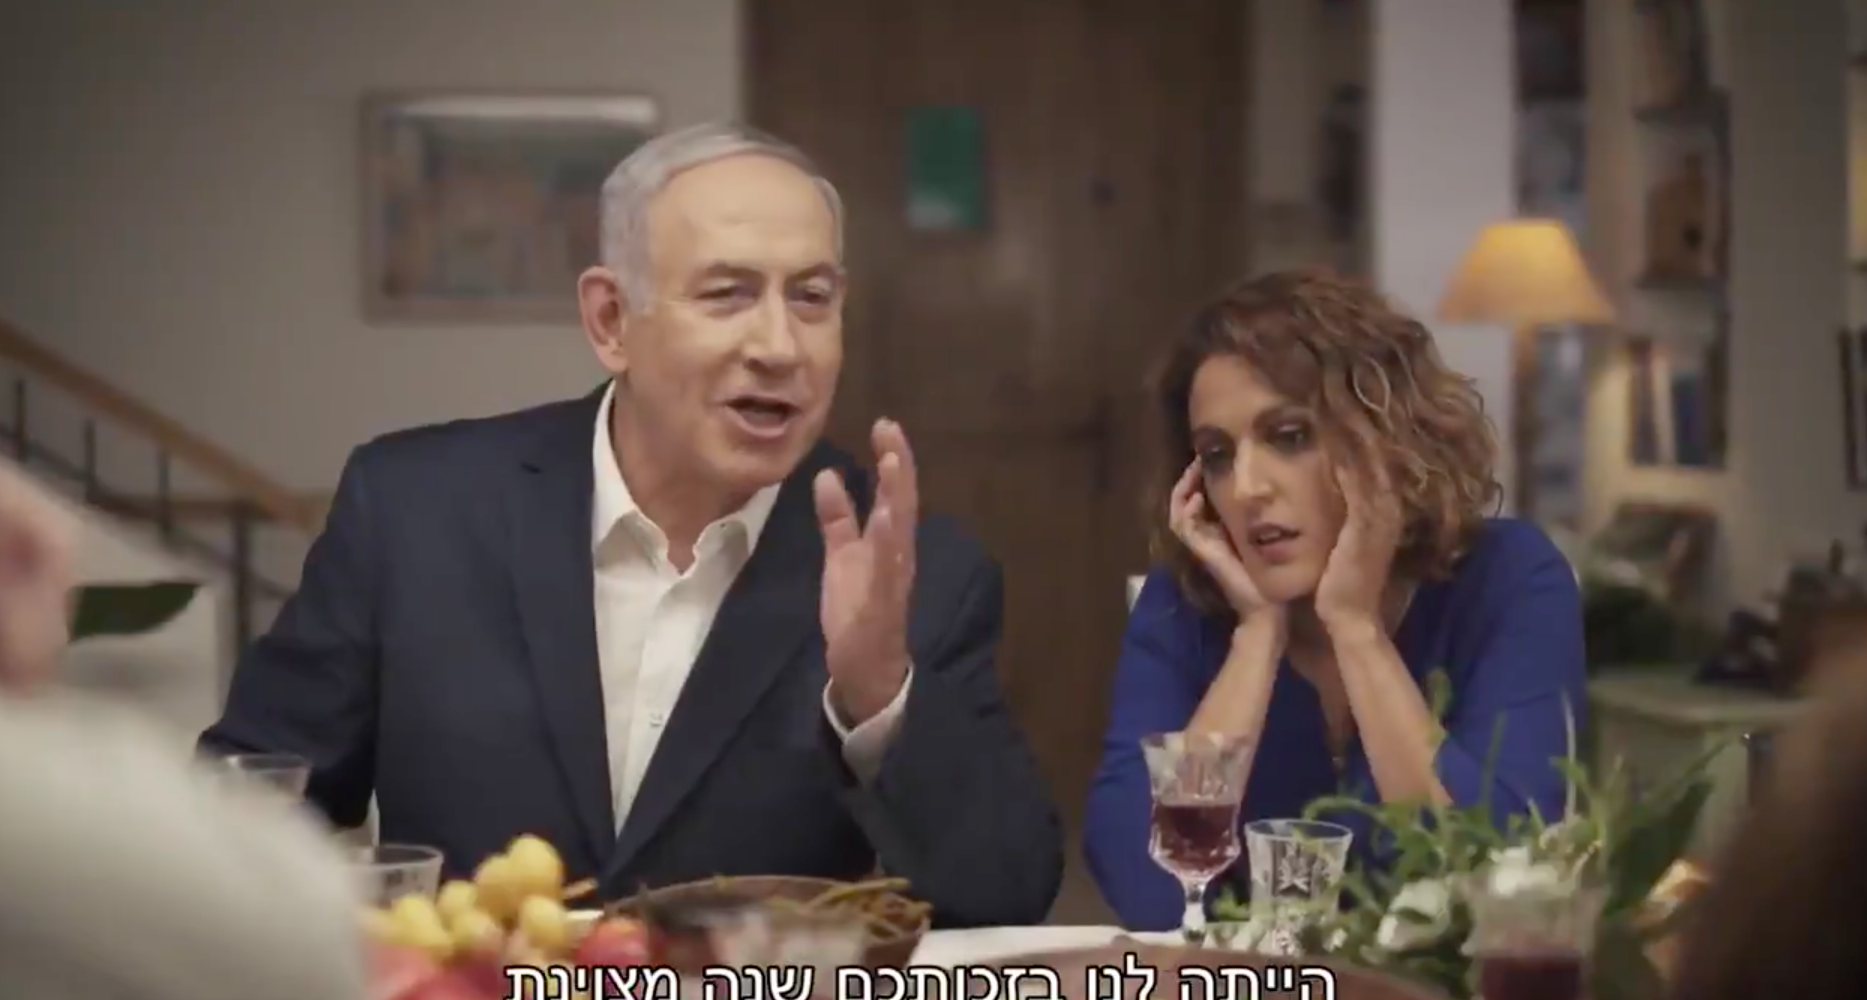 Netanyahu Stars In Charming Rosh Hashanah Greeting Clip The Forward